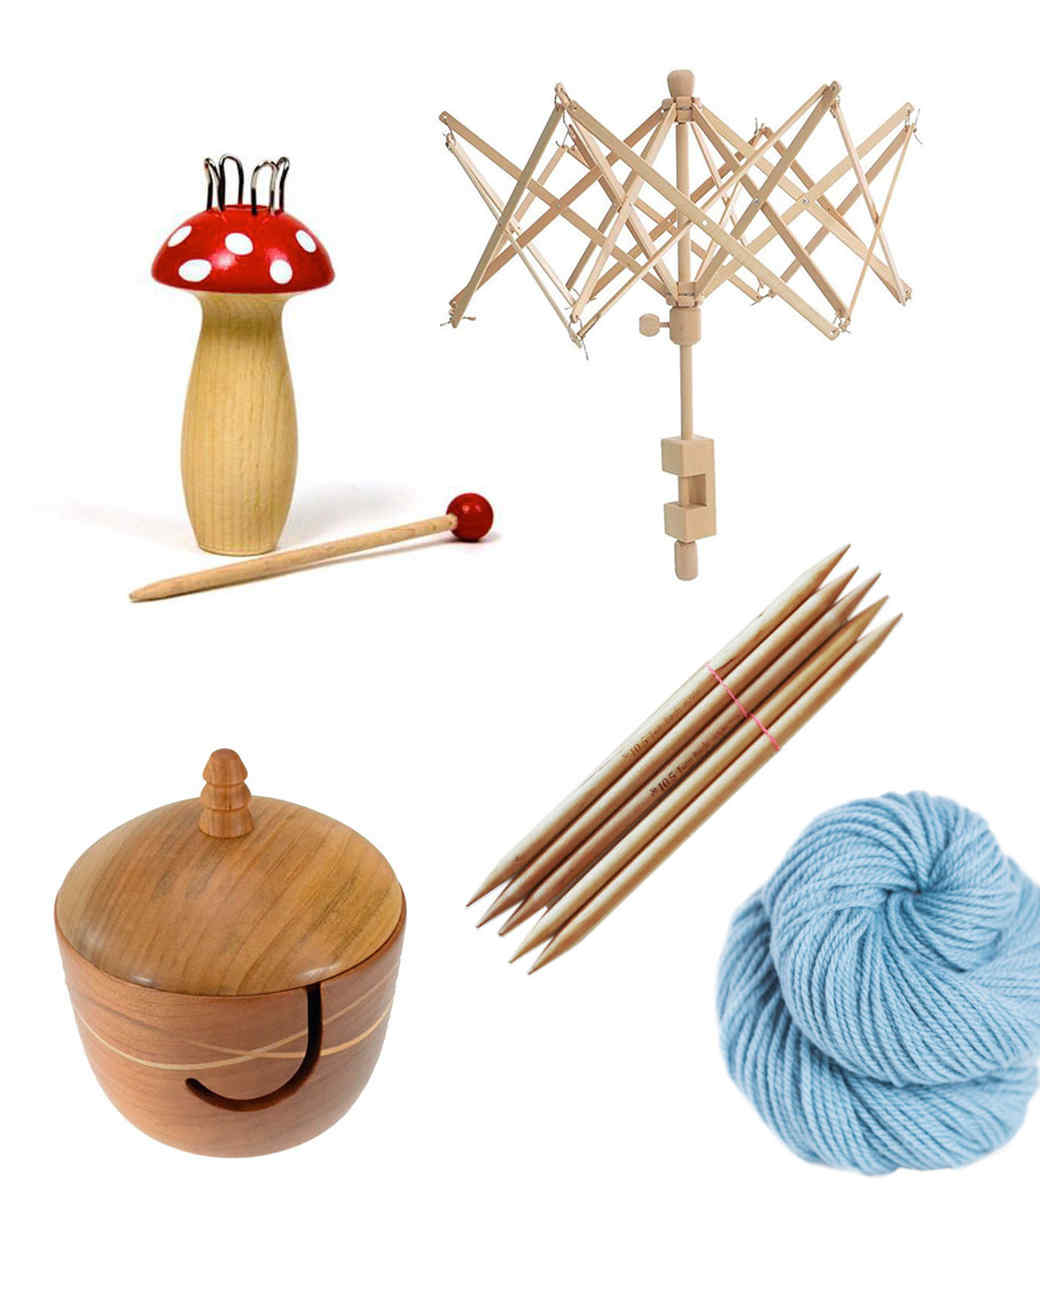 The Most Essential Knitting Tools and Materials